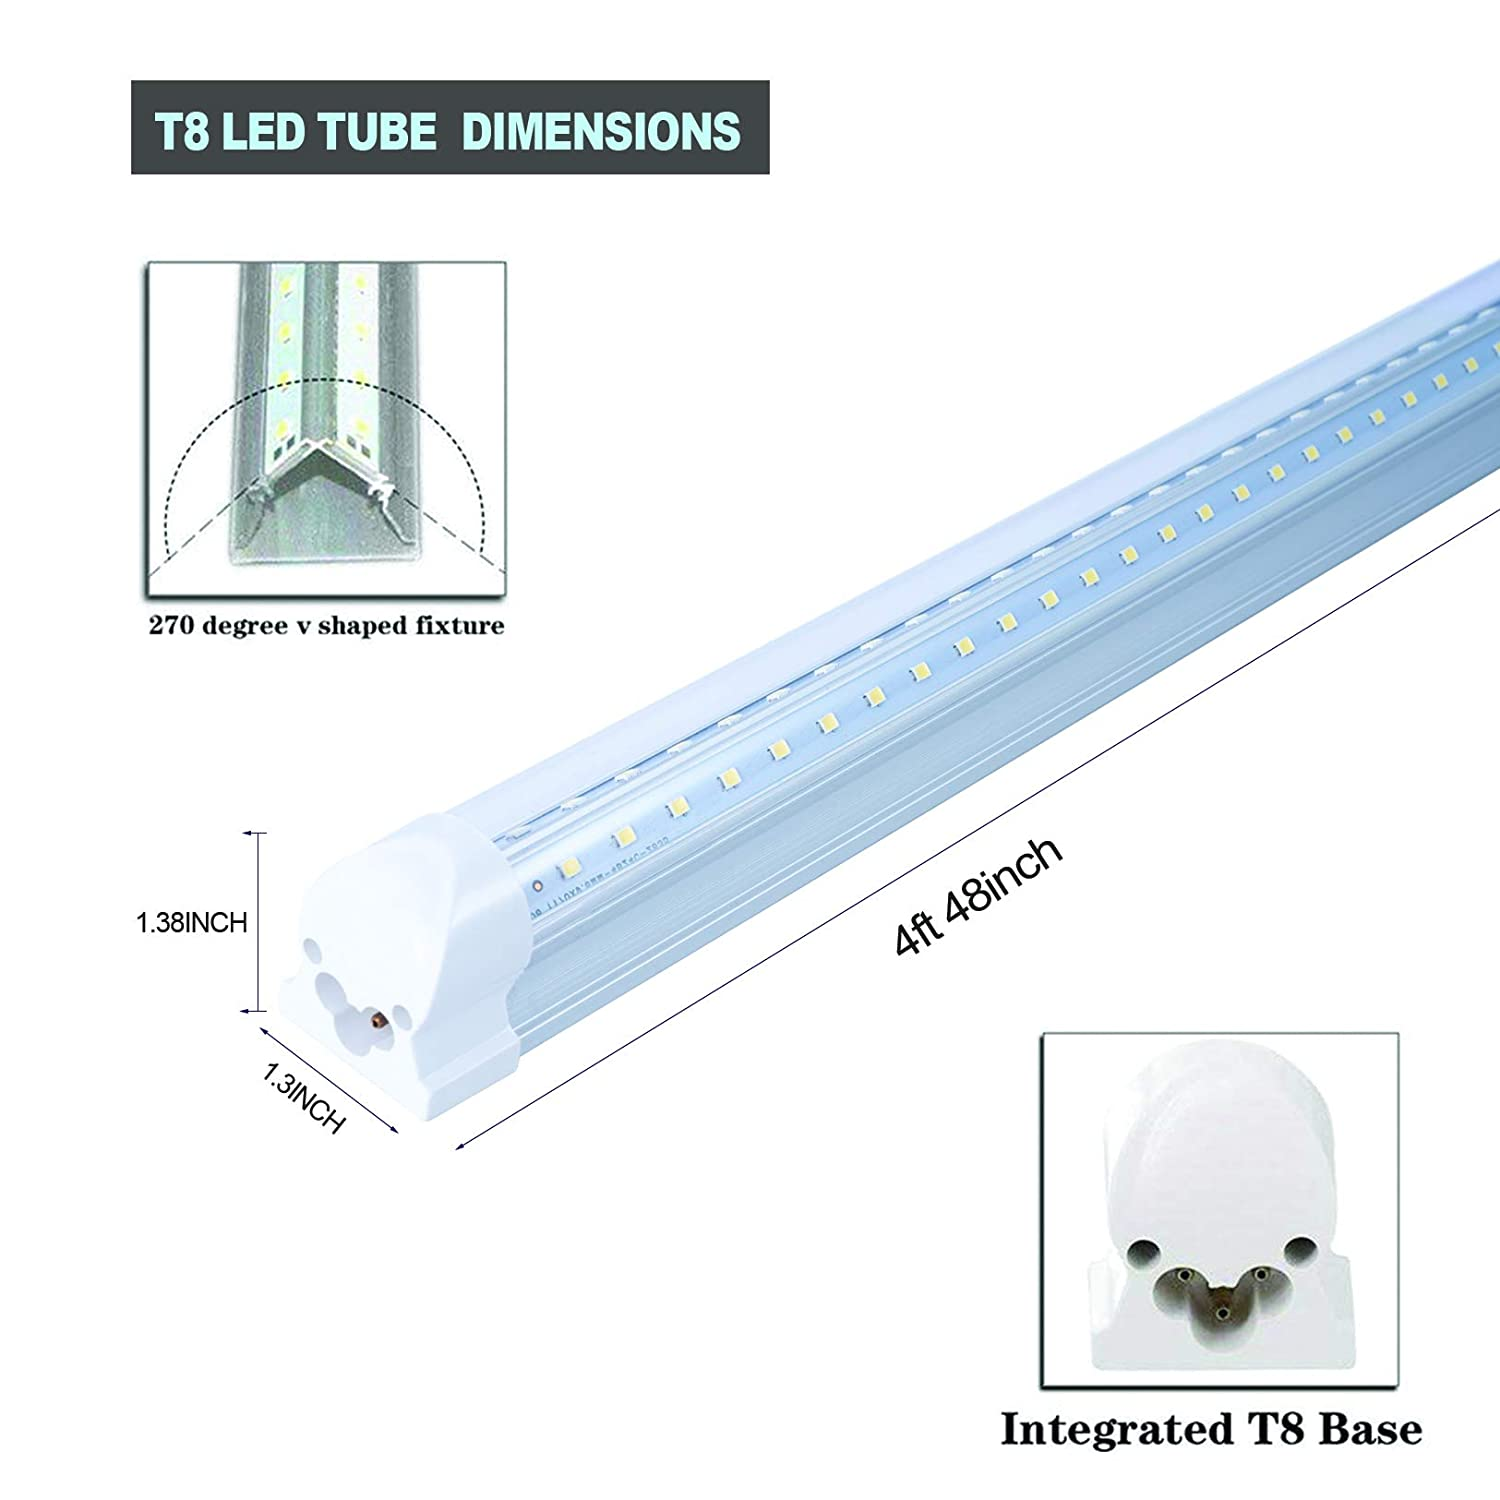 Utility Linkable 4 Foot Under Cabinet Lamp White Daylight 6000k 5 Years Warranty Garage Lights Indoor Shop Lighting with On//Off Switch Cable 12 Pack T8 Led Integrated V Shaped 4FT 40W Tube Light